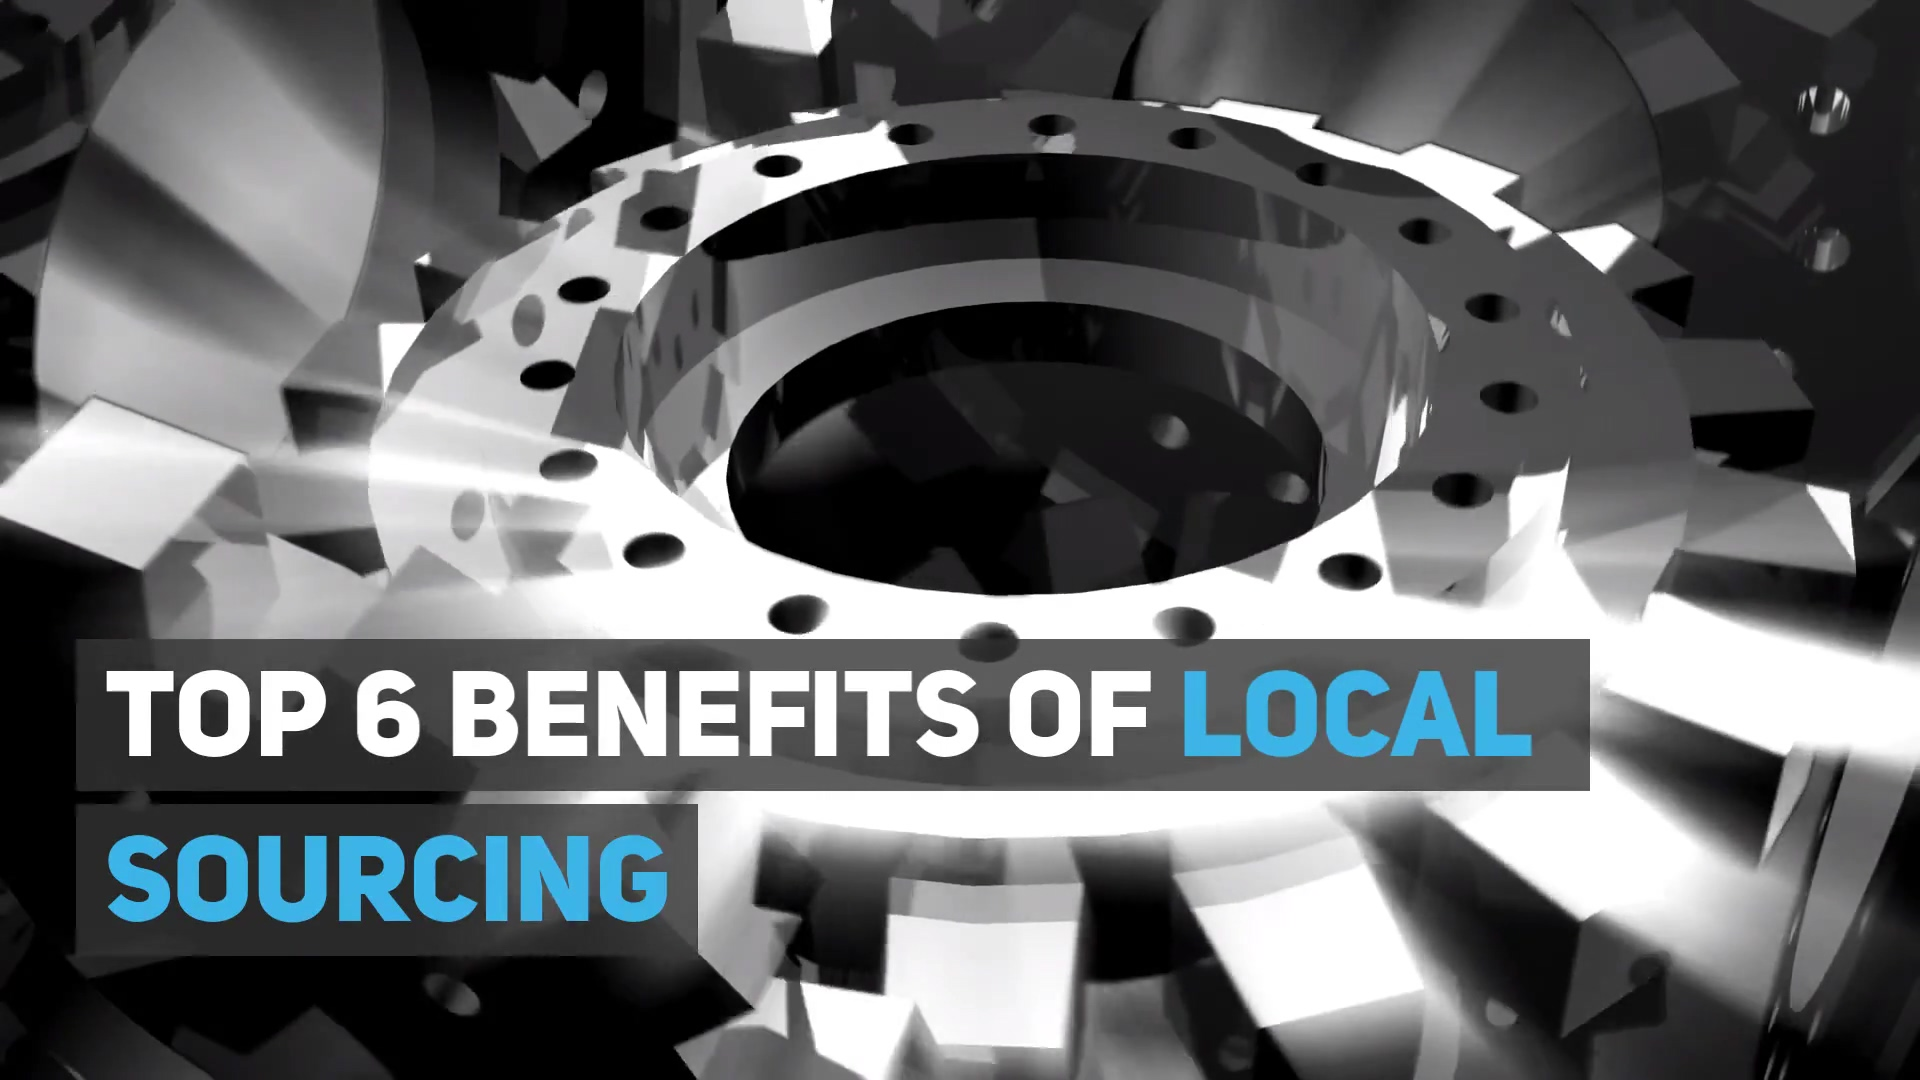 Top_6_Benefits_Of_Local_Sourcing